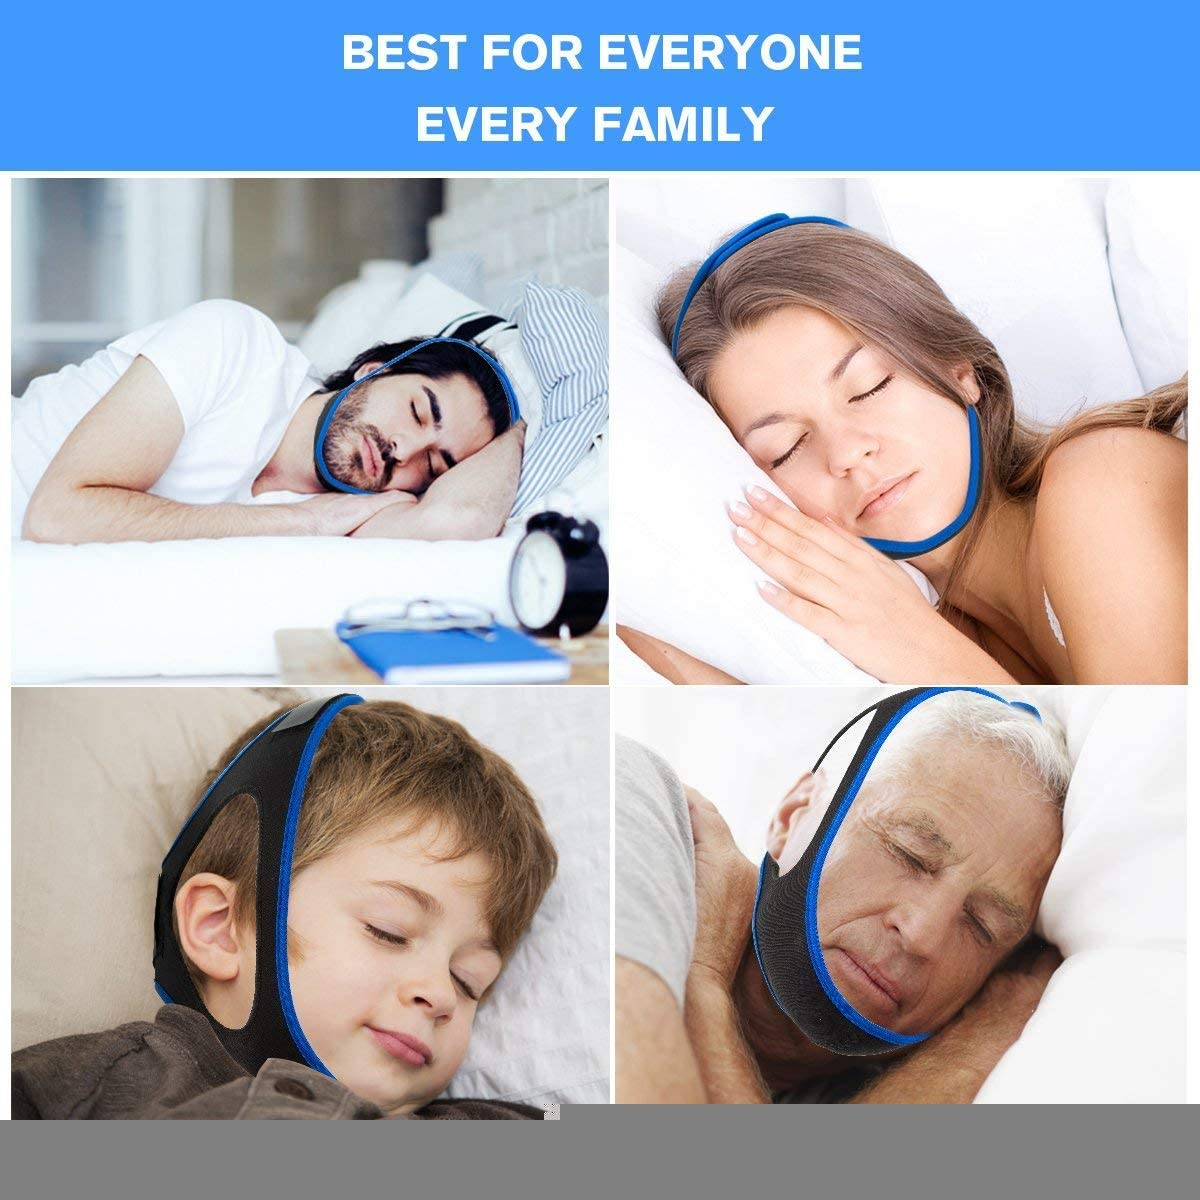 Strap to Stop Snoring, Anti-snoring Unisex Jaw Belt, Get Restful Sleep and Wake Up Energized. Adjustable Chin Strap.: Kitchen & Dining